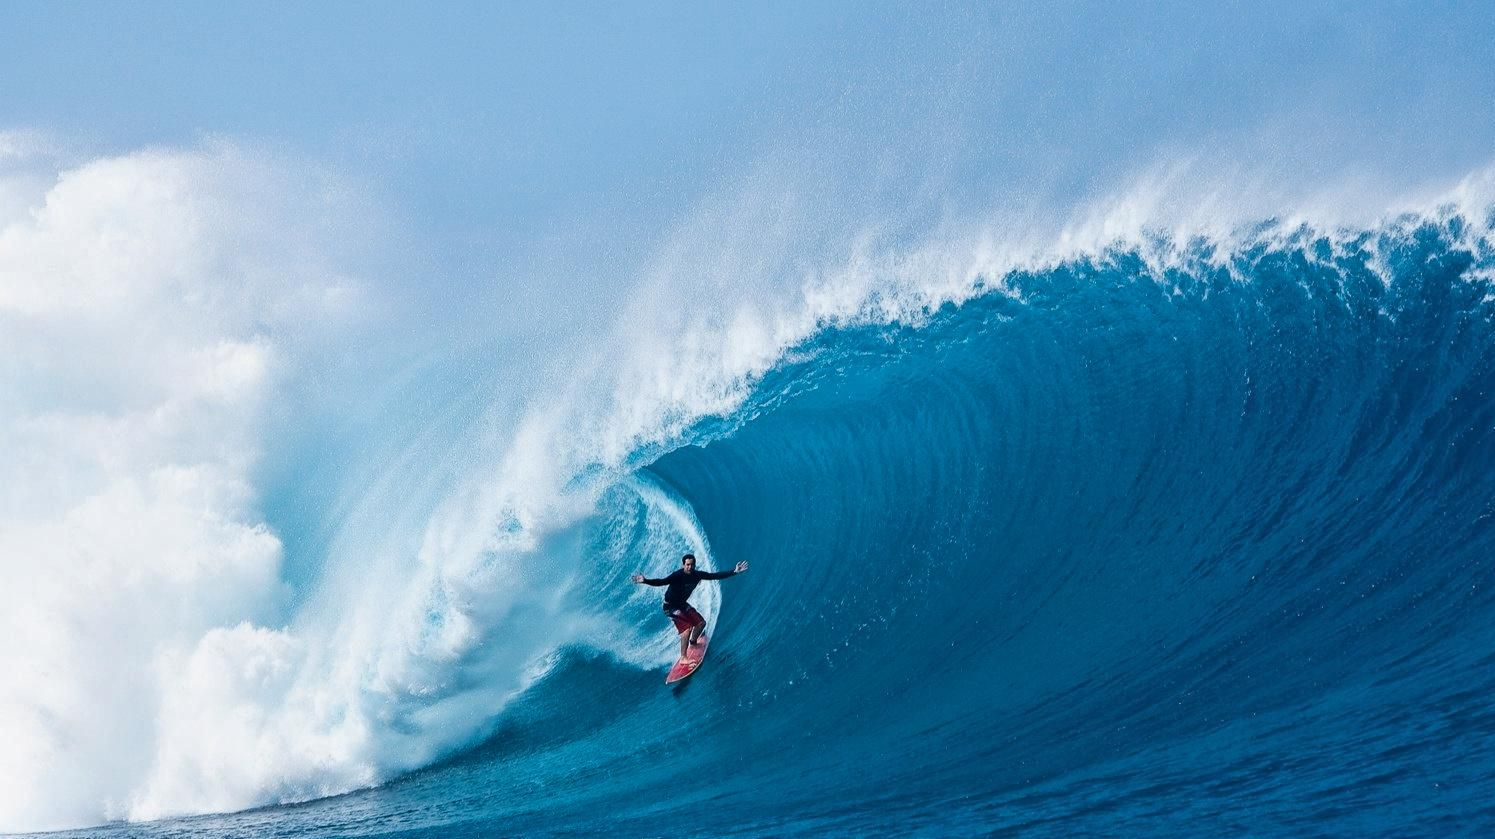 WORLD Surfaris' adviser David Scard in control on a Cloudbreak monster at Tavarua Island, Fiji.